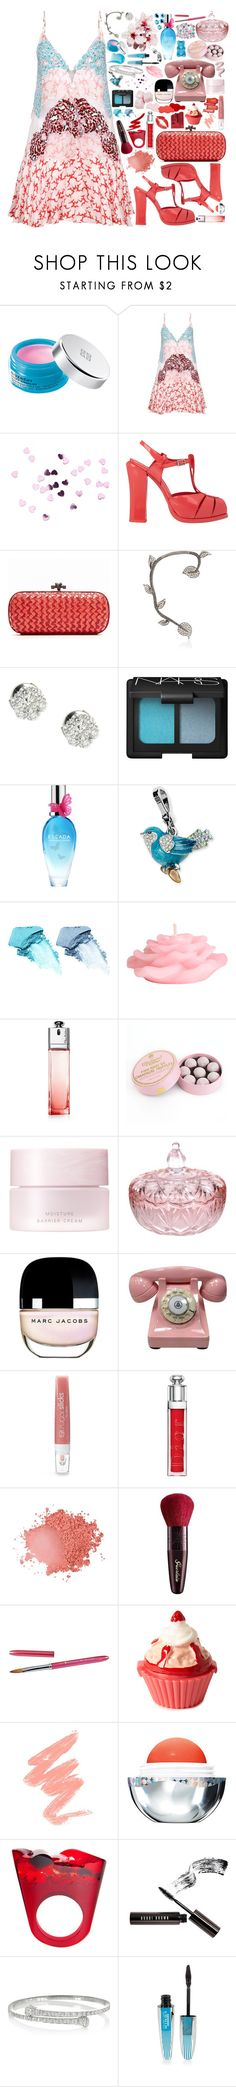 """The Phone May Be Waiting, Though I am Not"" by sarah-deslauriers ❤ liked on Polyvore featuring Givenchy, STELLA McCARTNEY, Fendi, Bottega Veneta, Elise Dray, Van Cleef & Arpels, NARS Cosmetics, ESCADA, Juicy Couture and H&M"